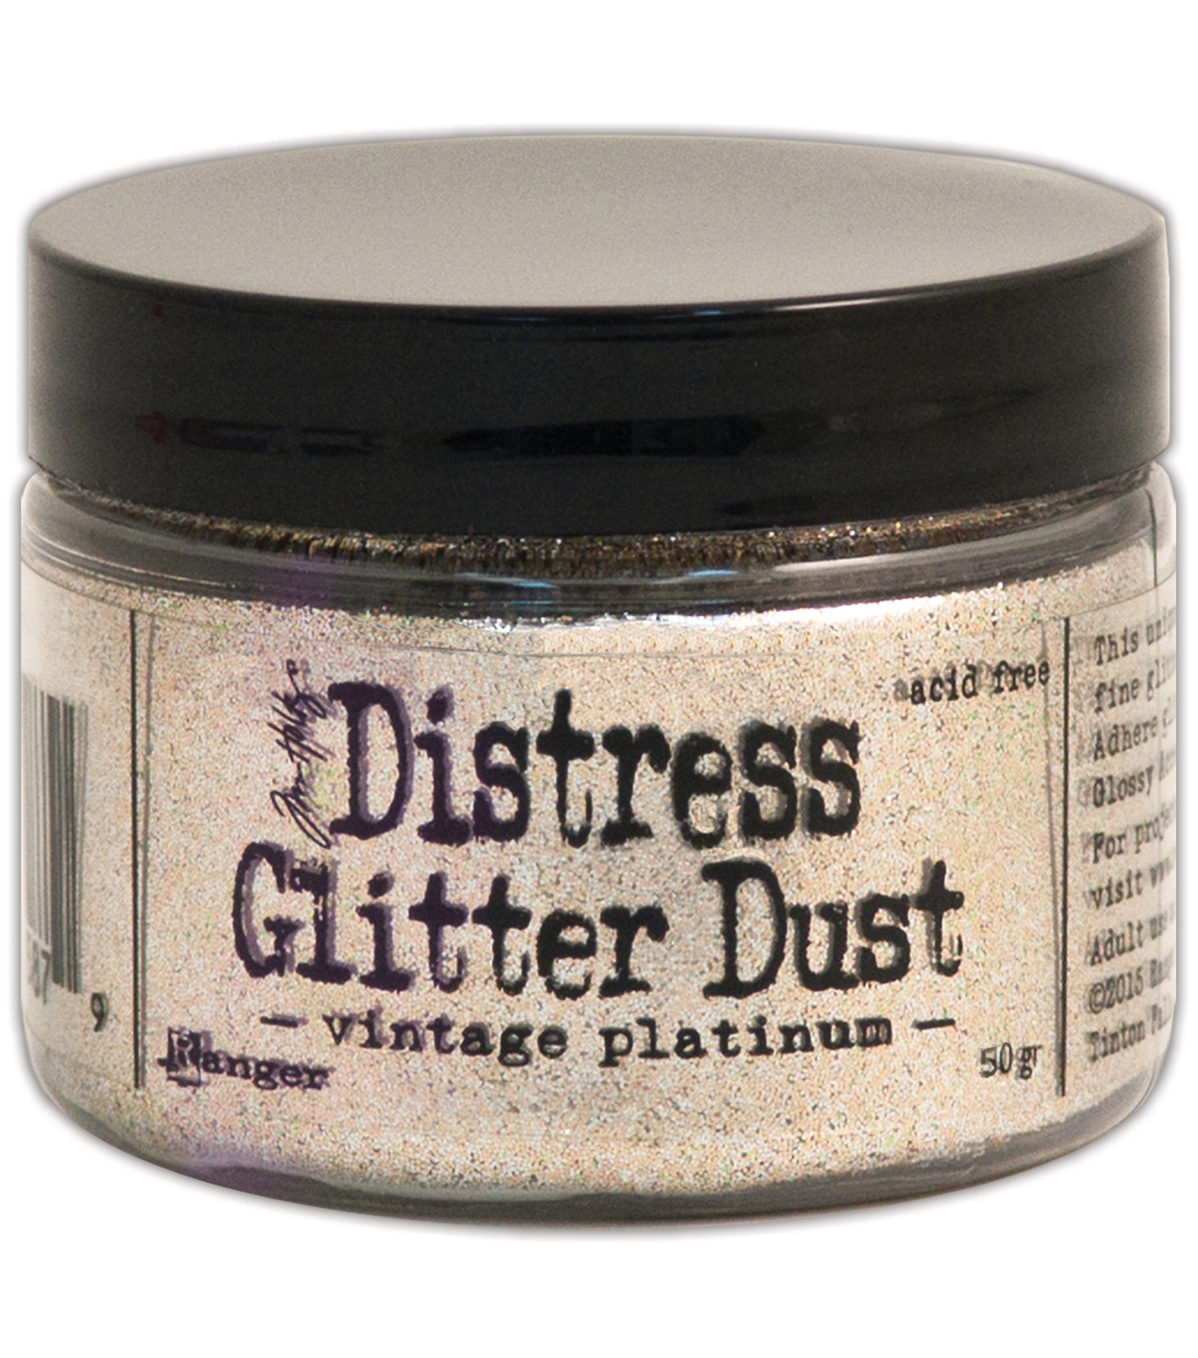 Tim Holtz Distress Glitter Dust .50g-Vintage Platinum